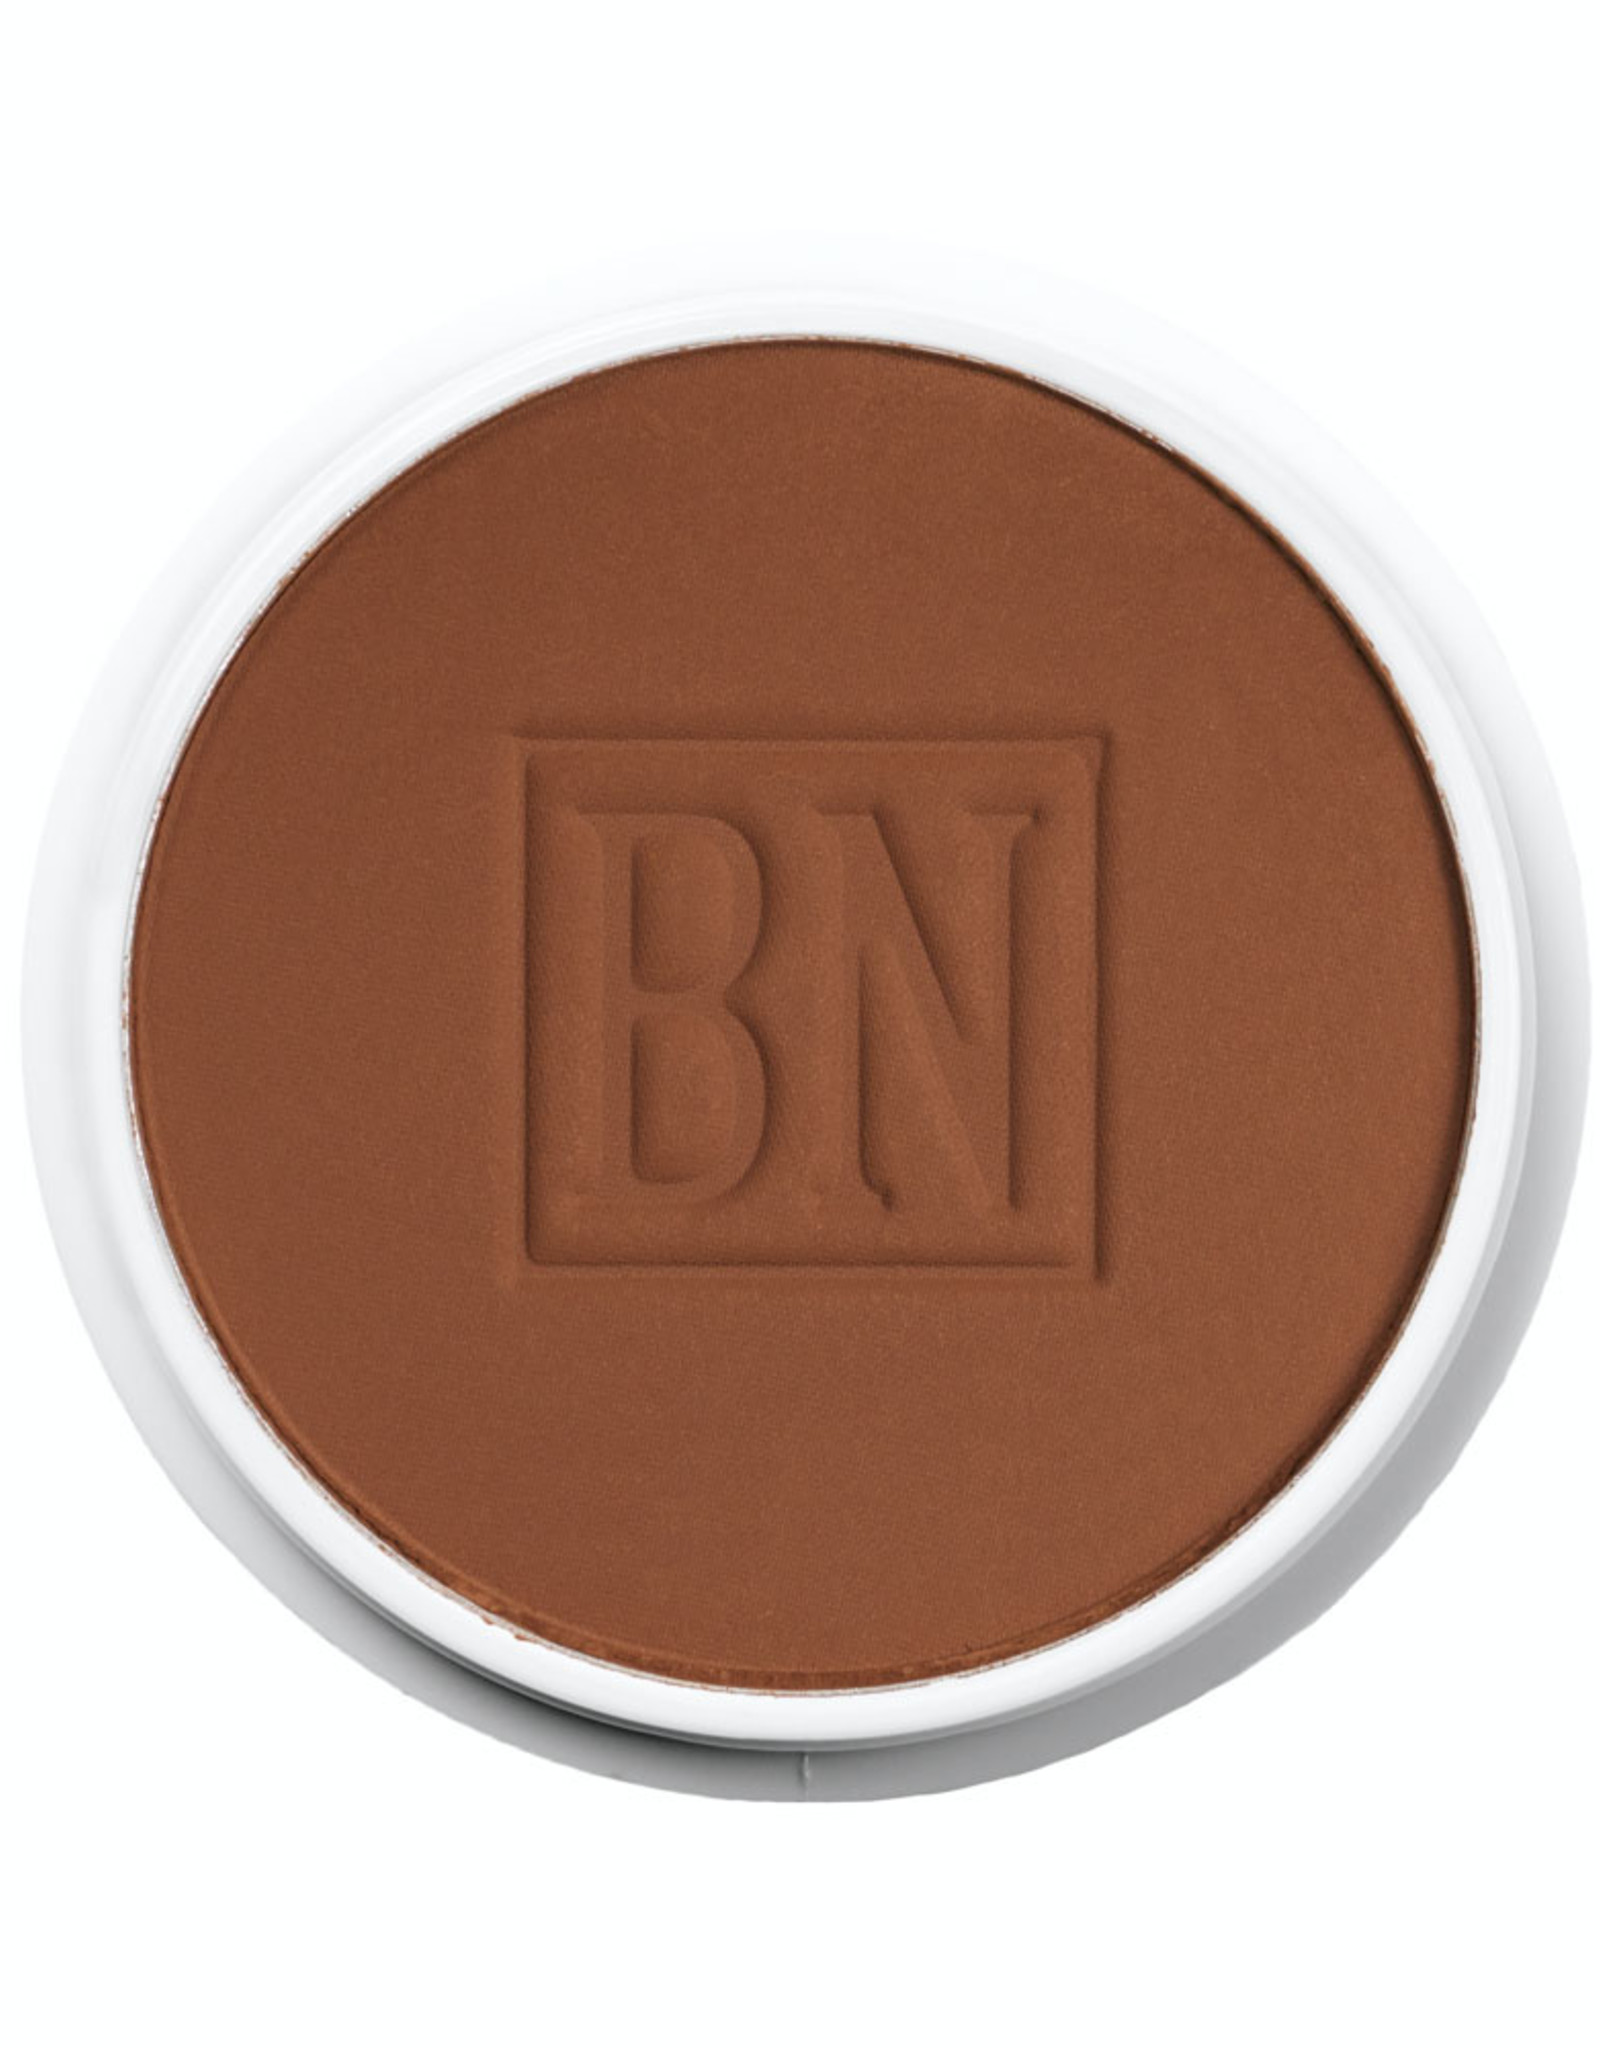 Ben Nye FOUNDATION-CAKE, CHESTNUT, 1 OZ